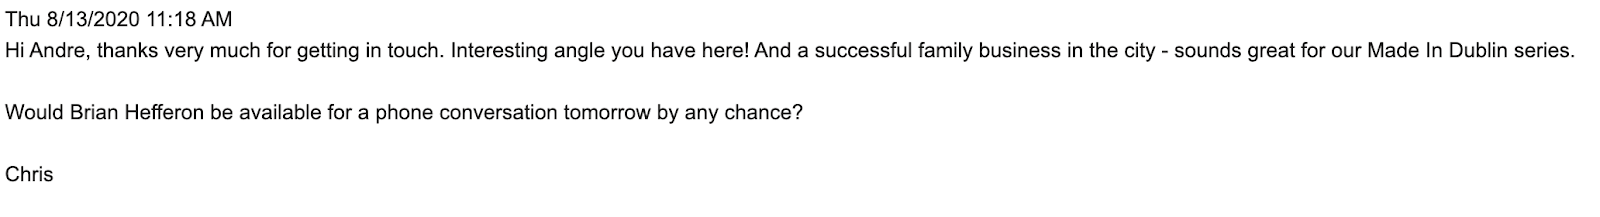 Email outreach reply 1